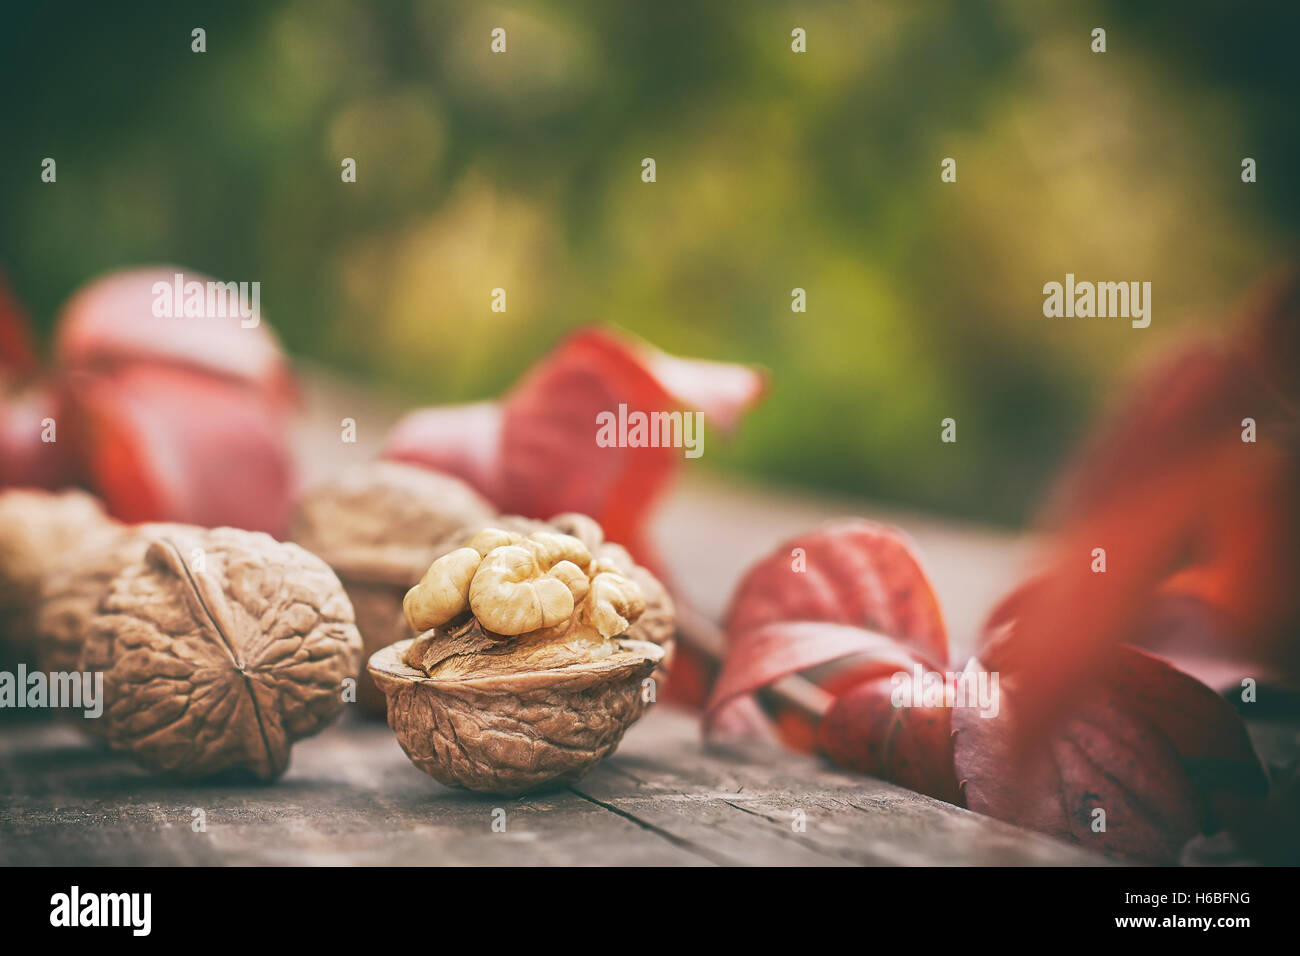 Walnuts on wooden table. Green blurry background with plenty of copy space - Stock Image